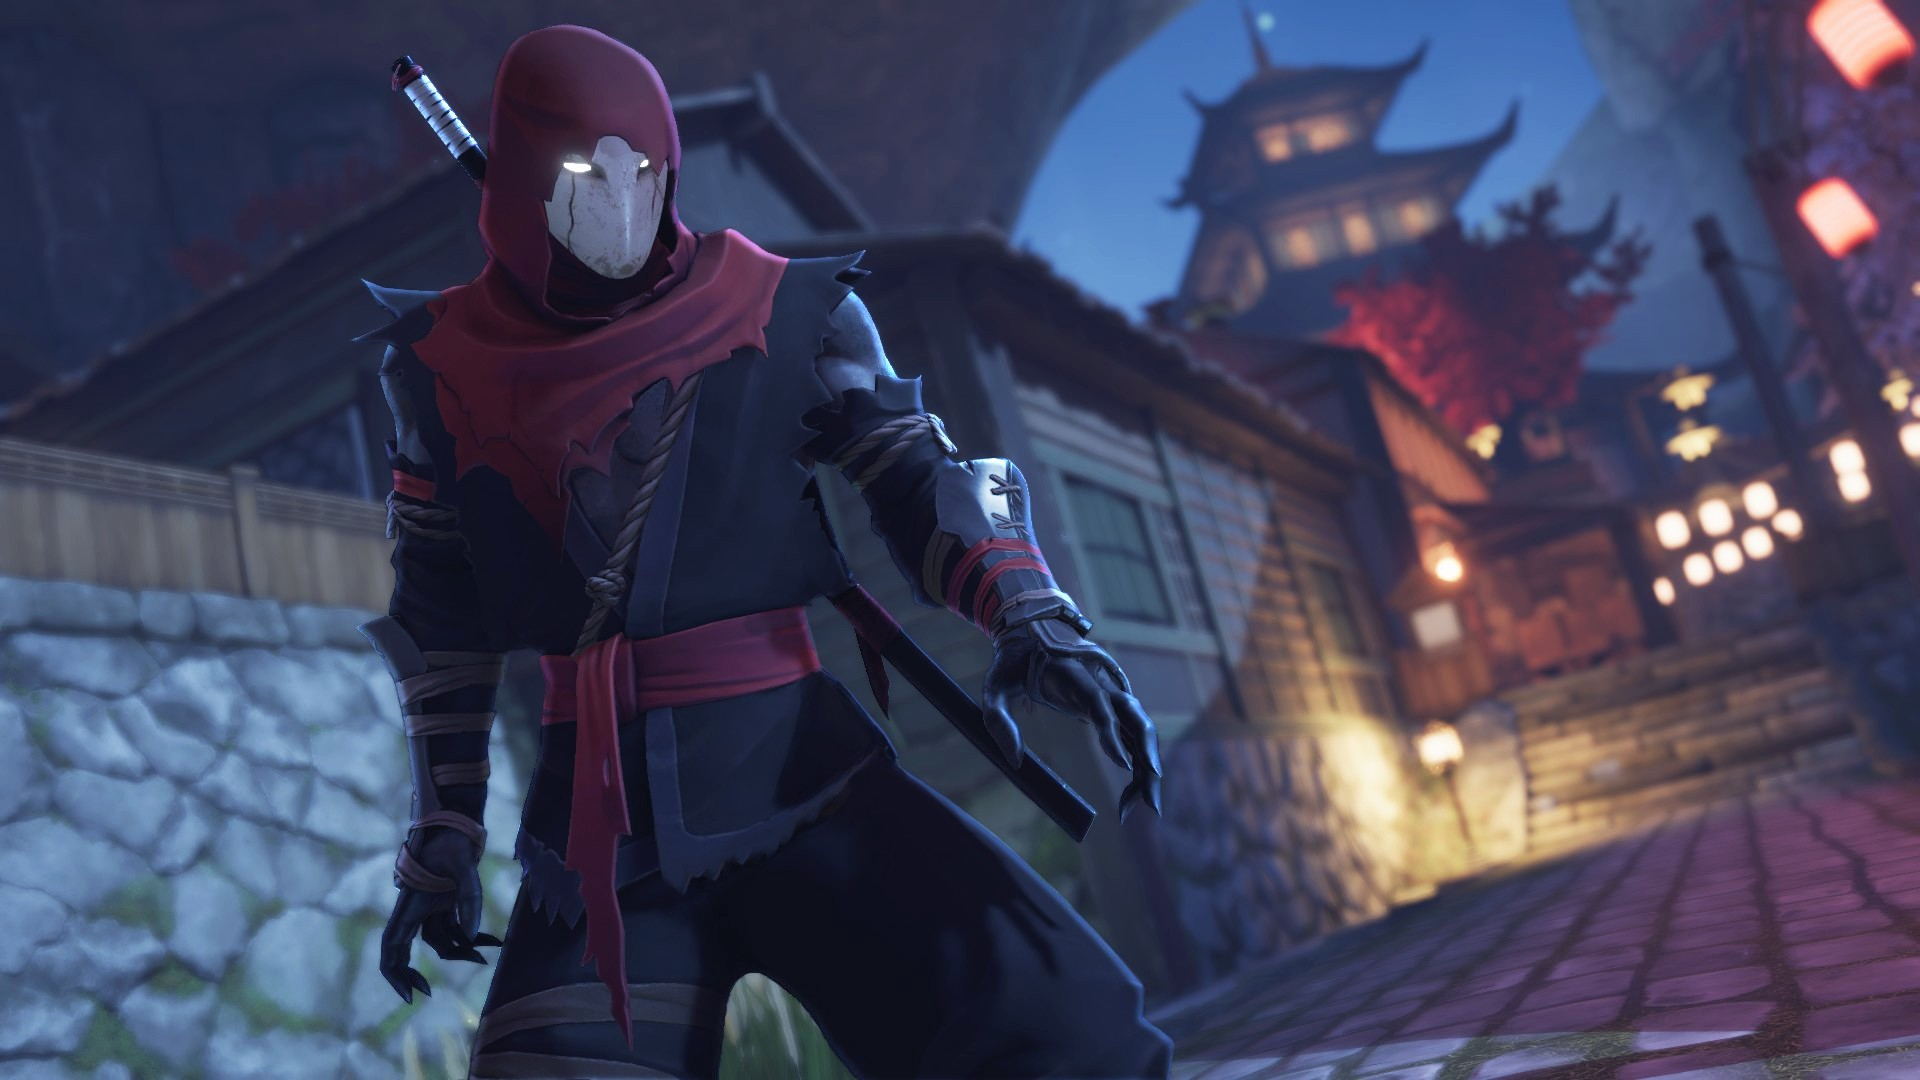 Aragami 2 Is Now Available For Digital Pre-order And Pre-download On Xbox One And Xbox Series X|S 1